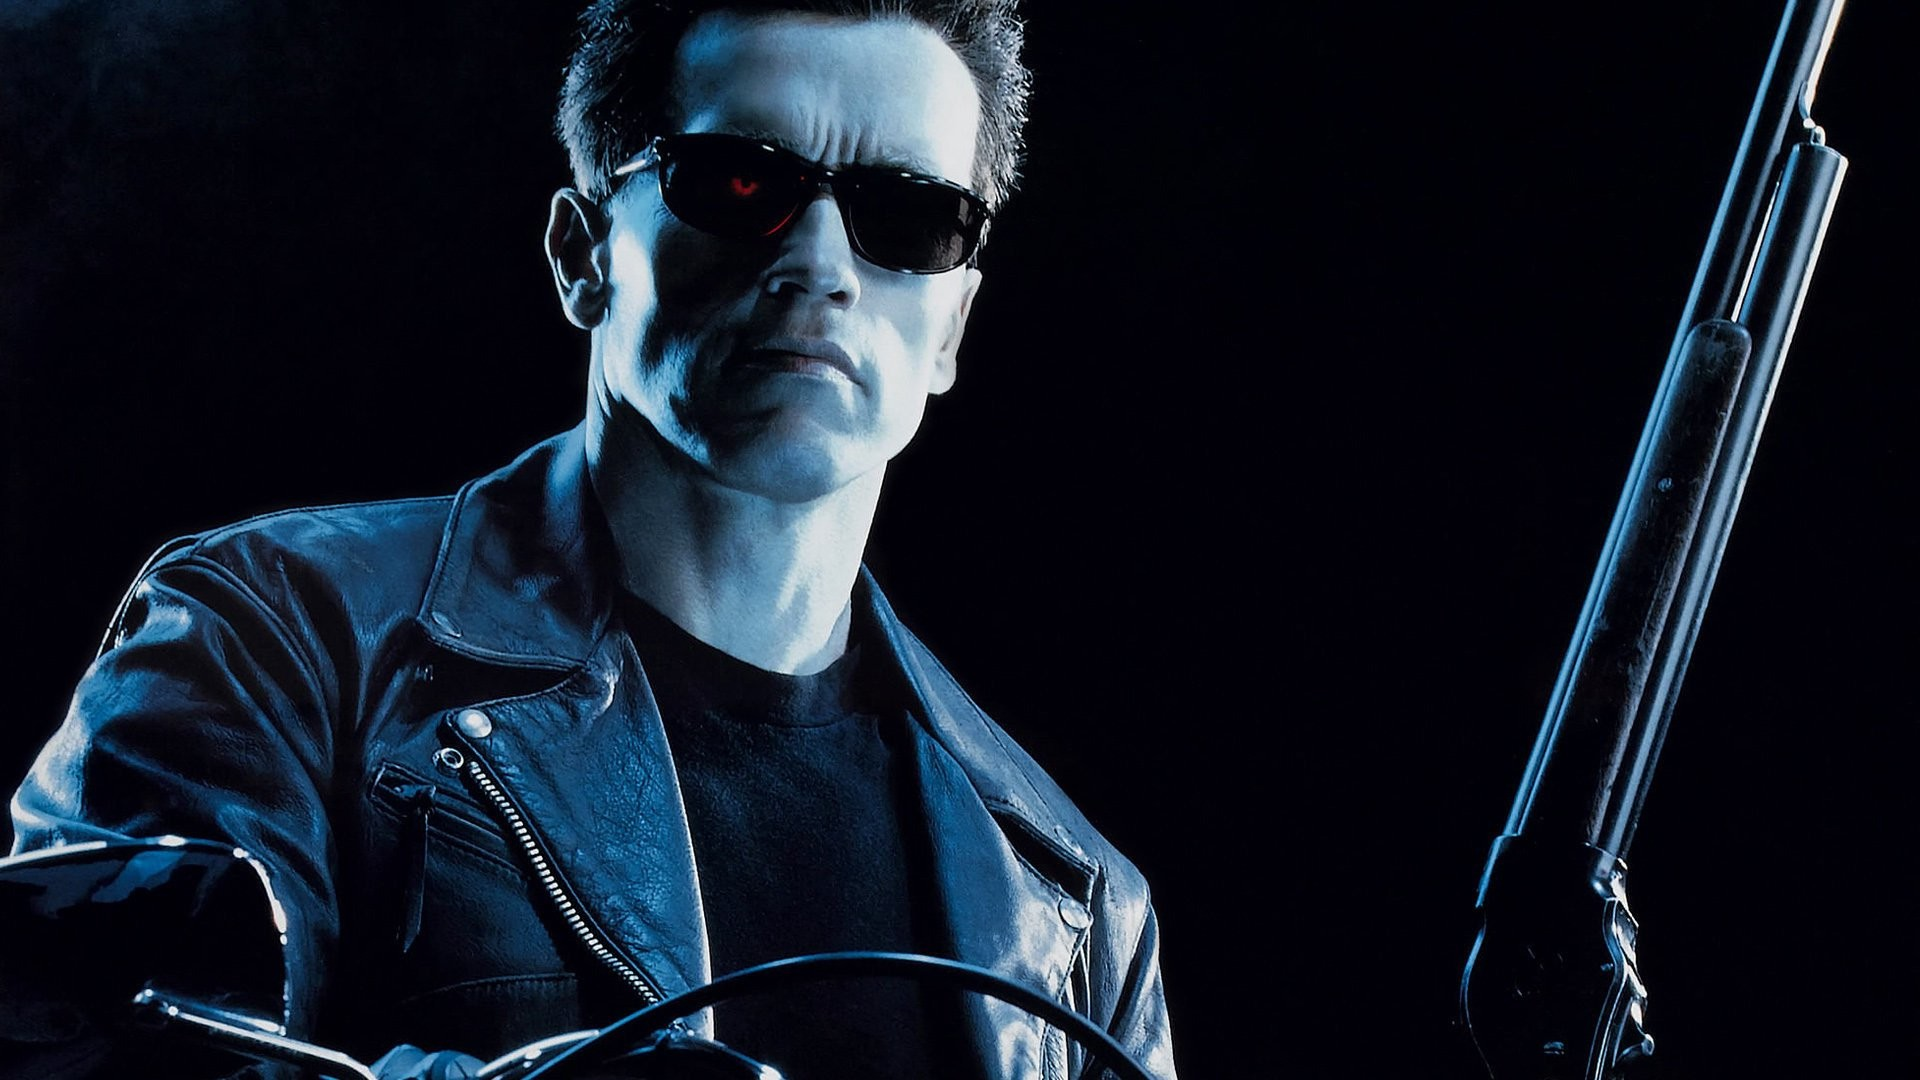 Terminator Judgment Day HD Wallpapers Backgrounds 1920×1080